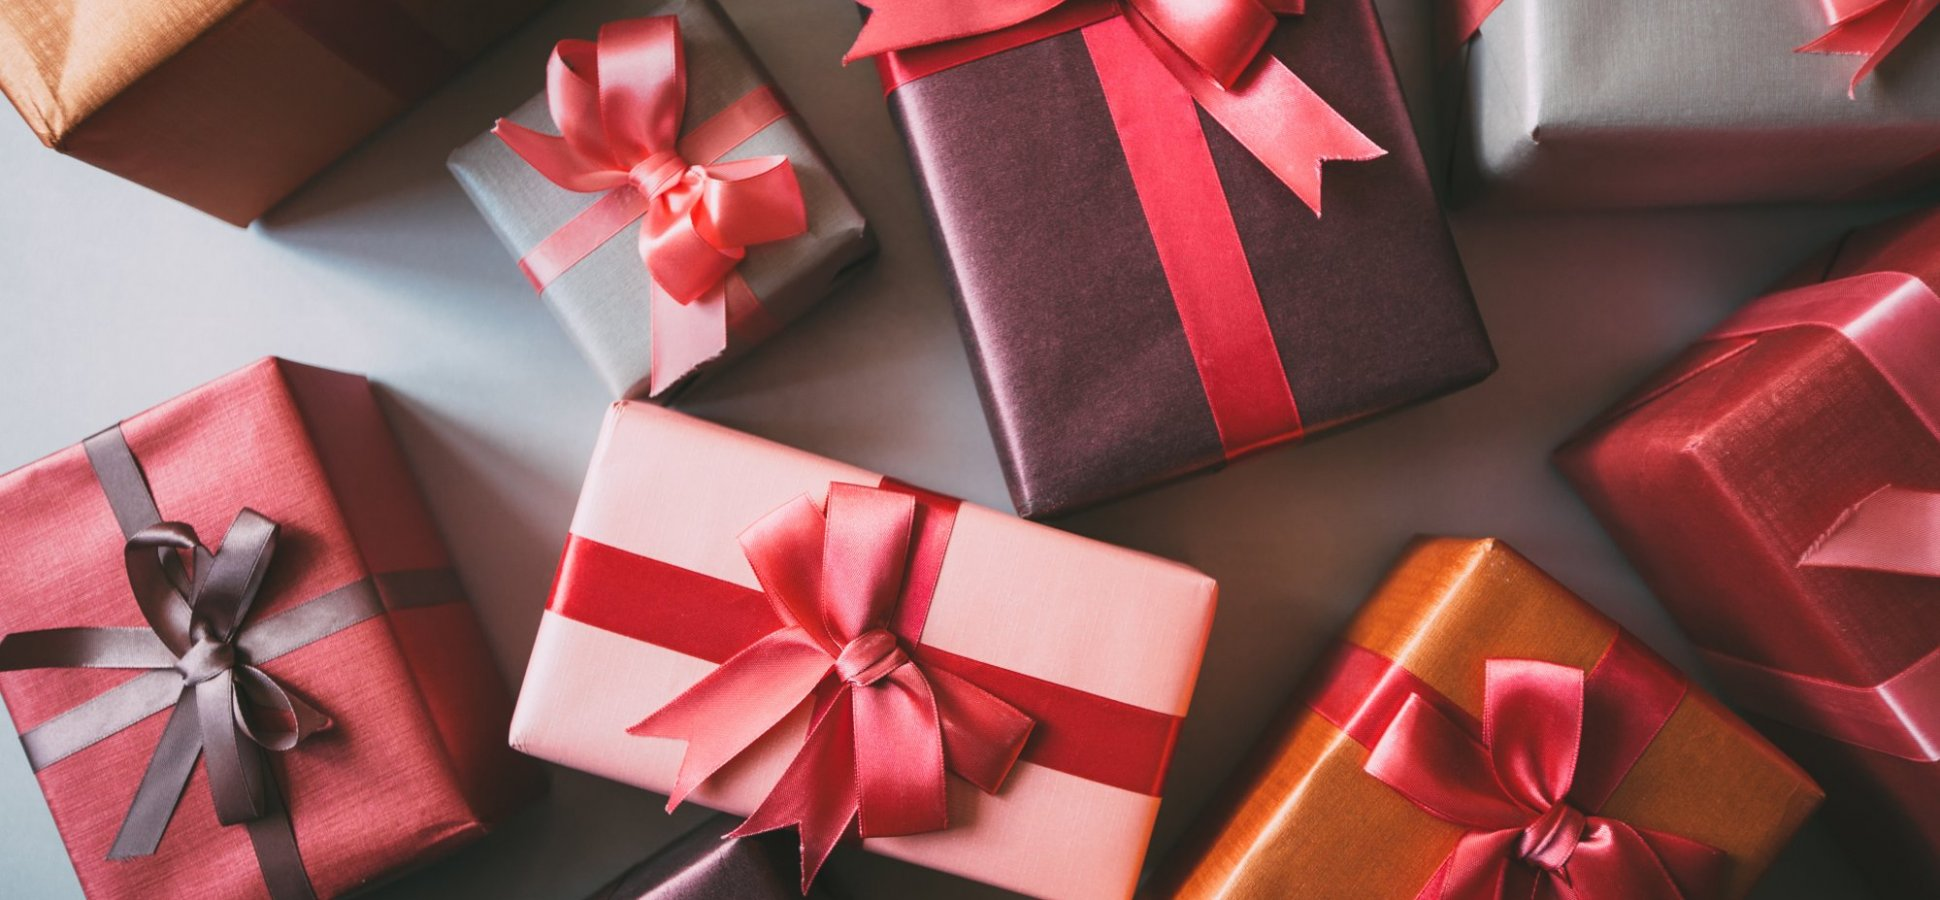 6 Great Gifts For The Entrepreneurs In Your Life